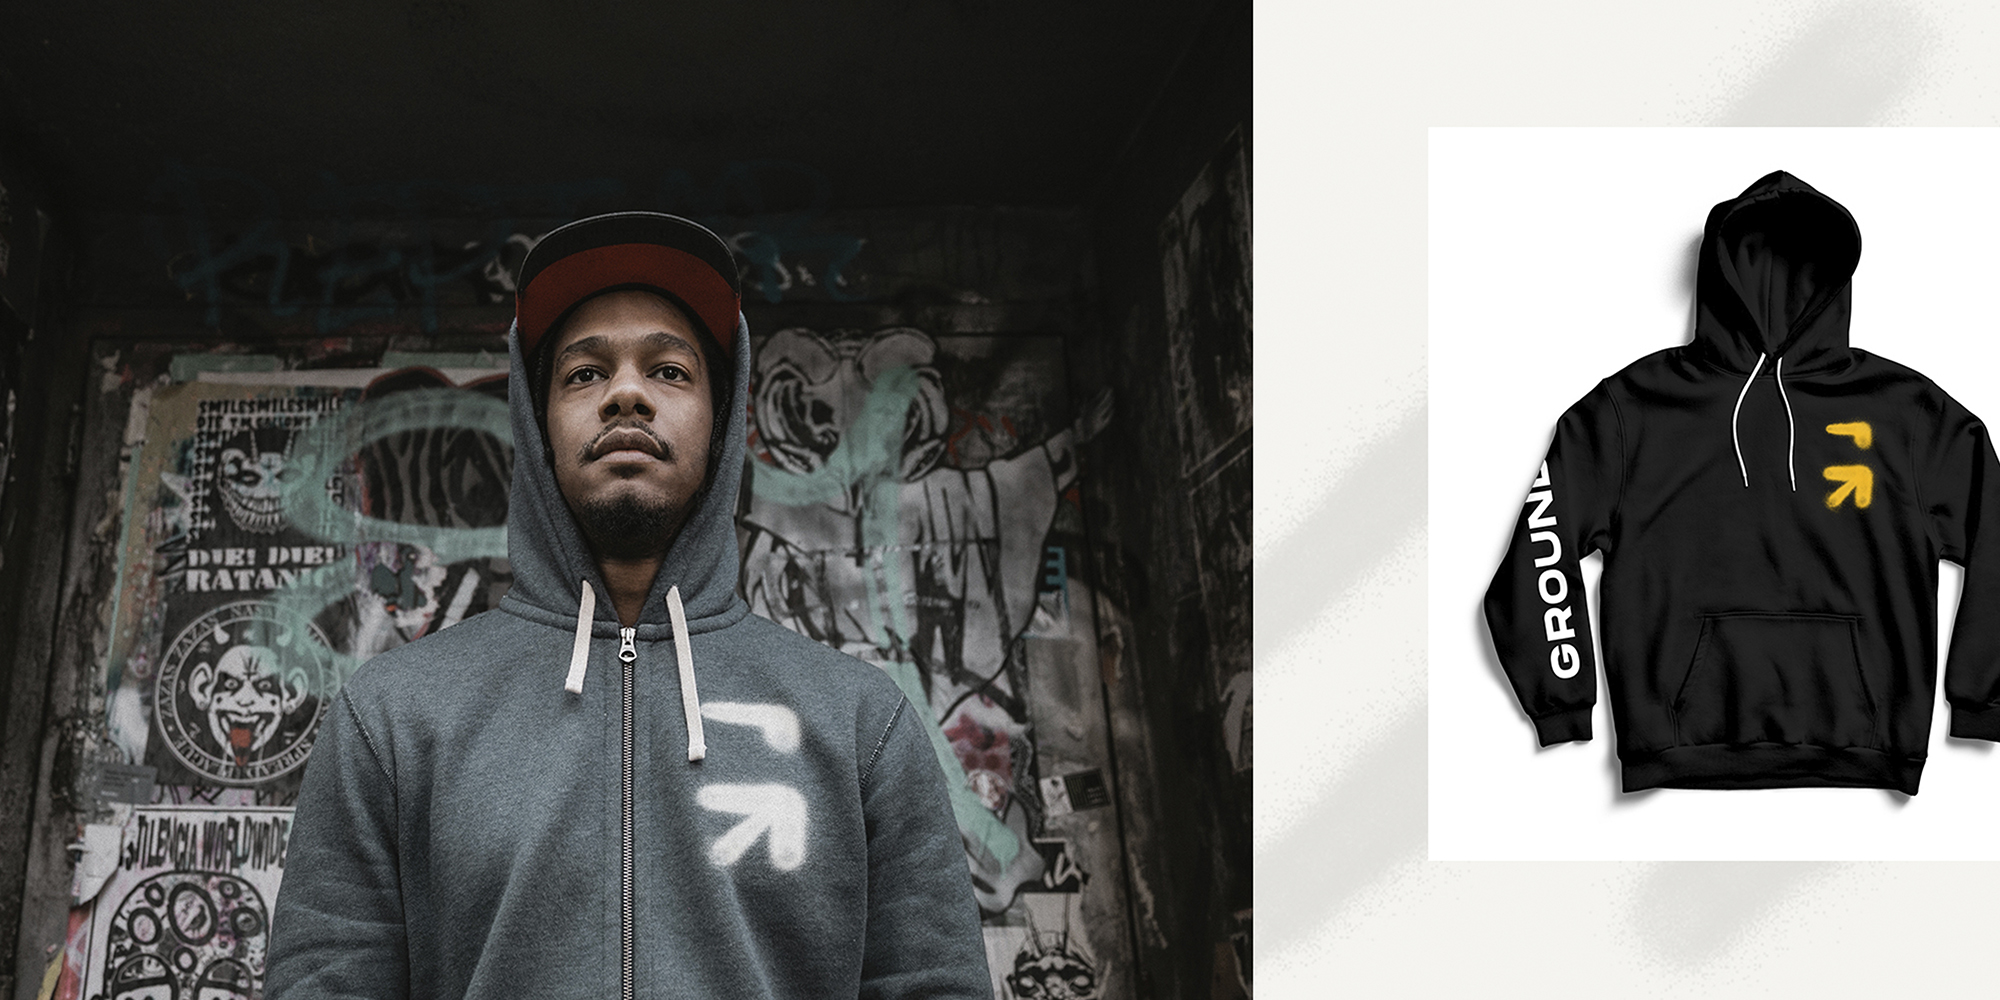 Left: Grounded team member modeling branded streetwear; Right: Black hoodie with Ground logo